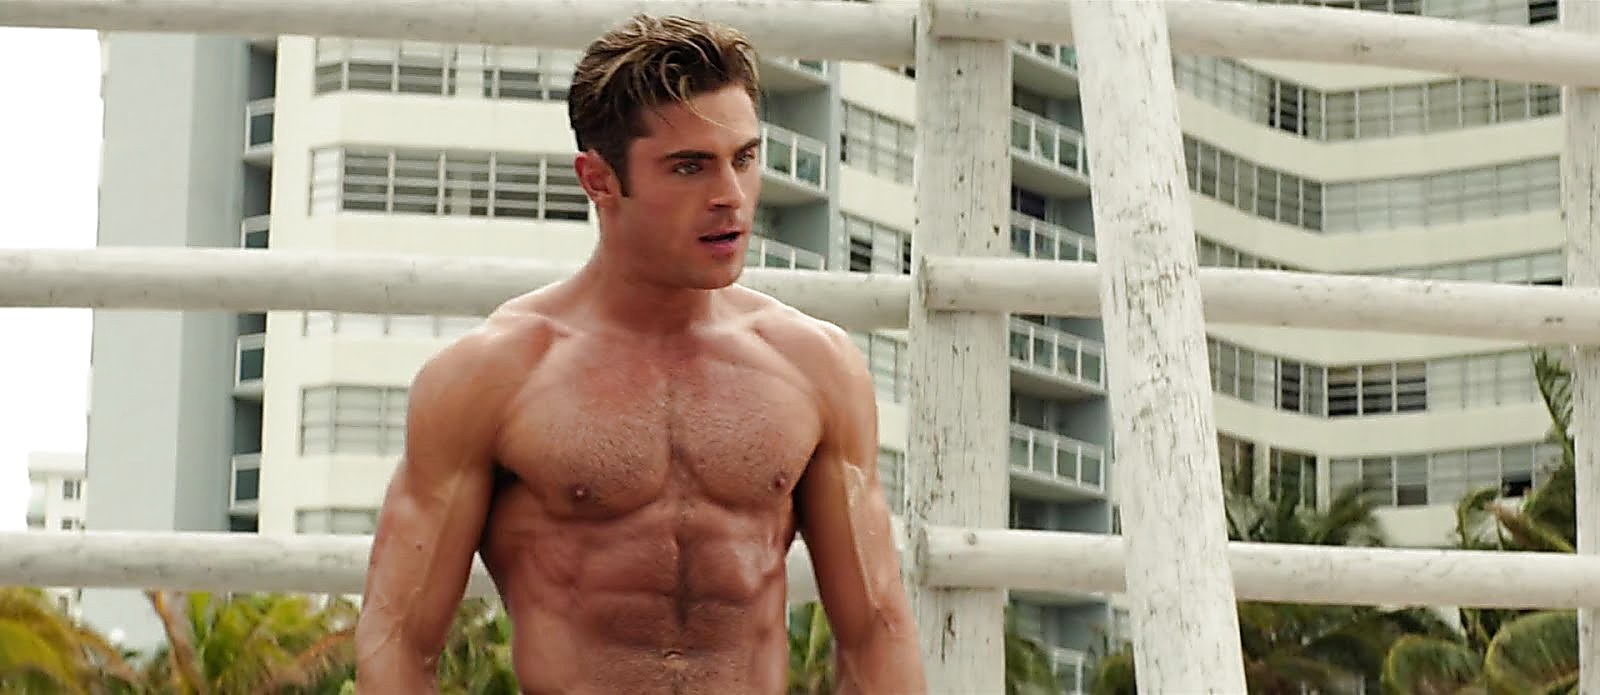 Zac Efron sexy shirtless scene August 15, 2017, 10am